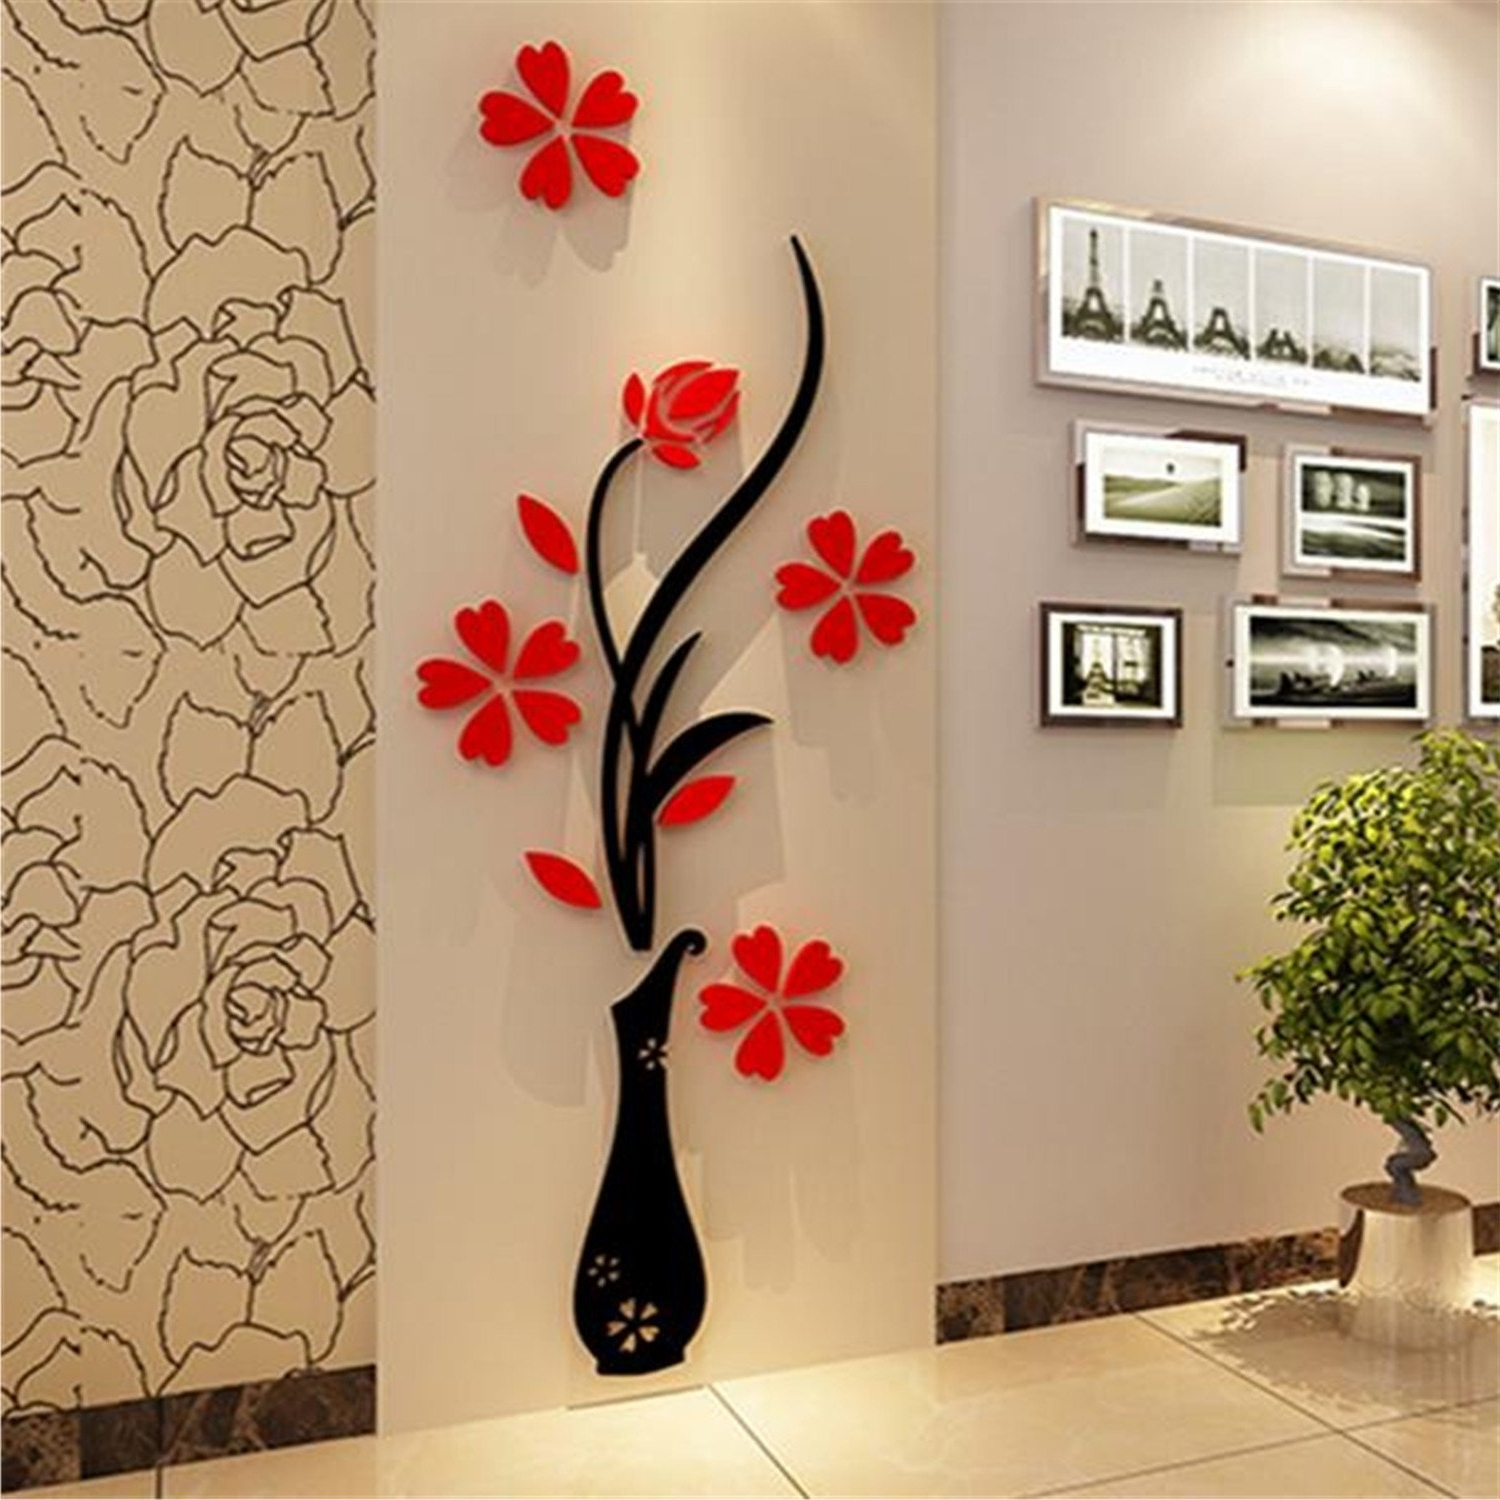 Designs : Love Coco 3D & Vinyl Wall Art Together With 3D Effect Throughout Well Known 3D Effect Wall Art (View 7 of 15)